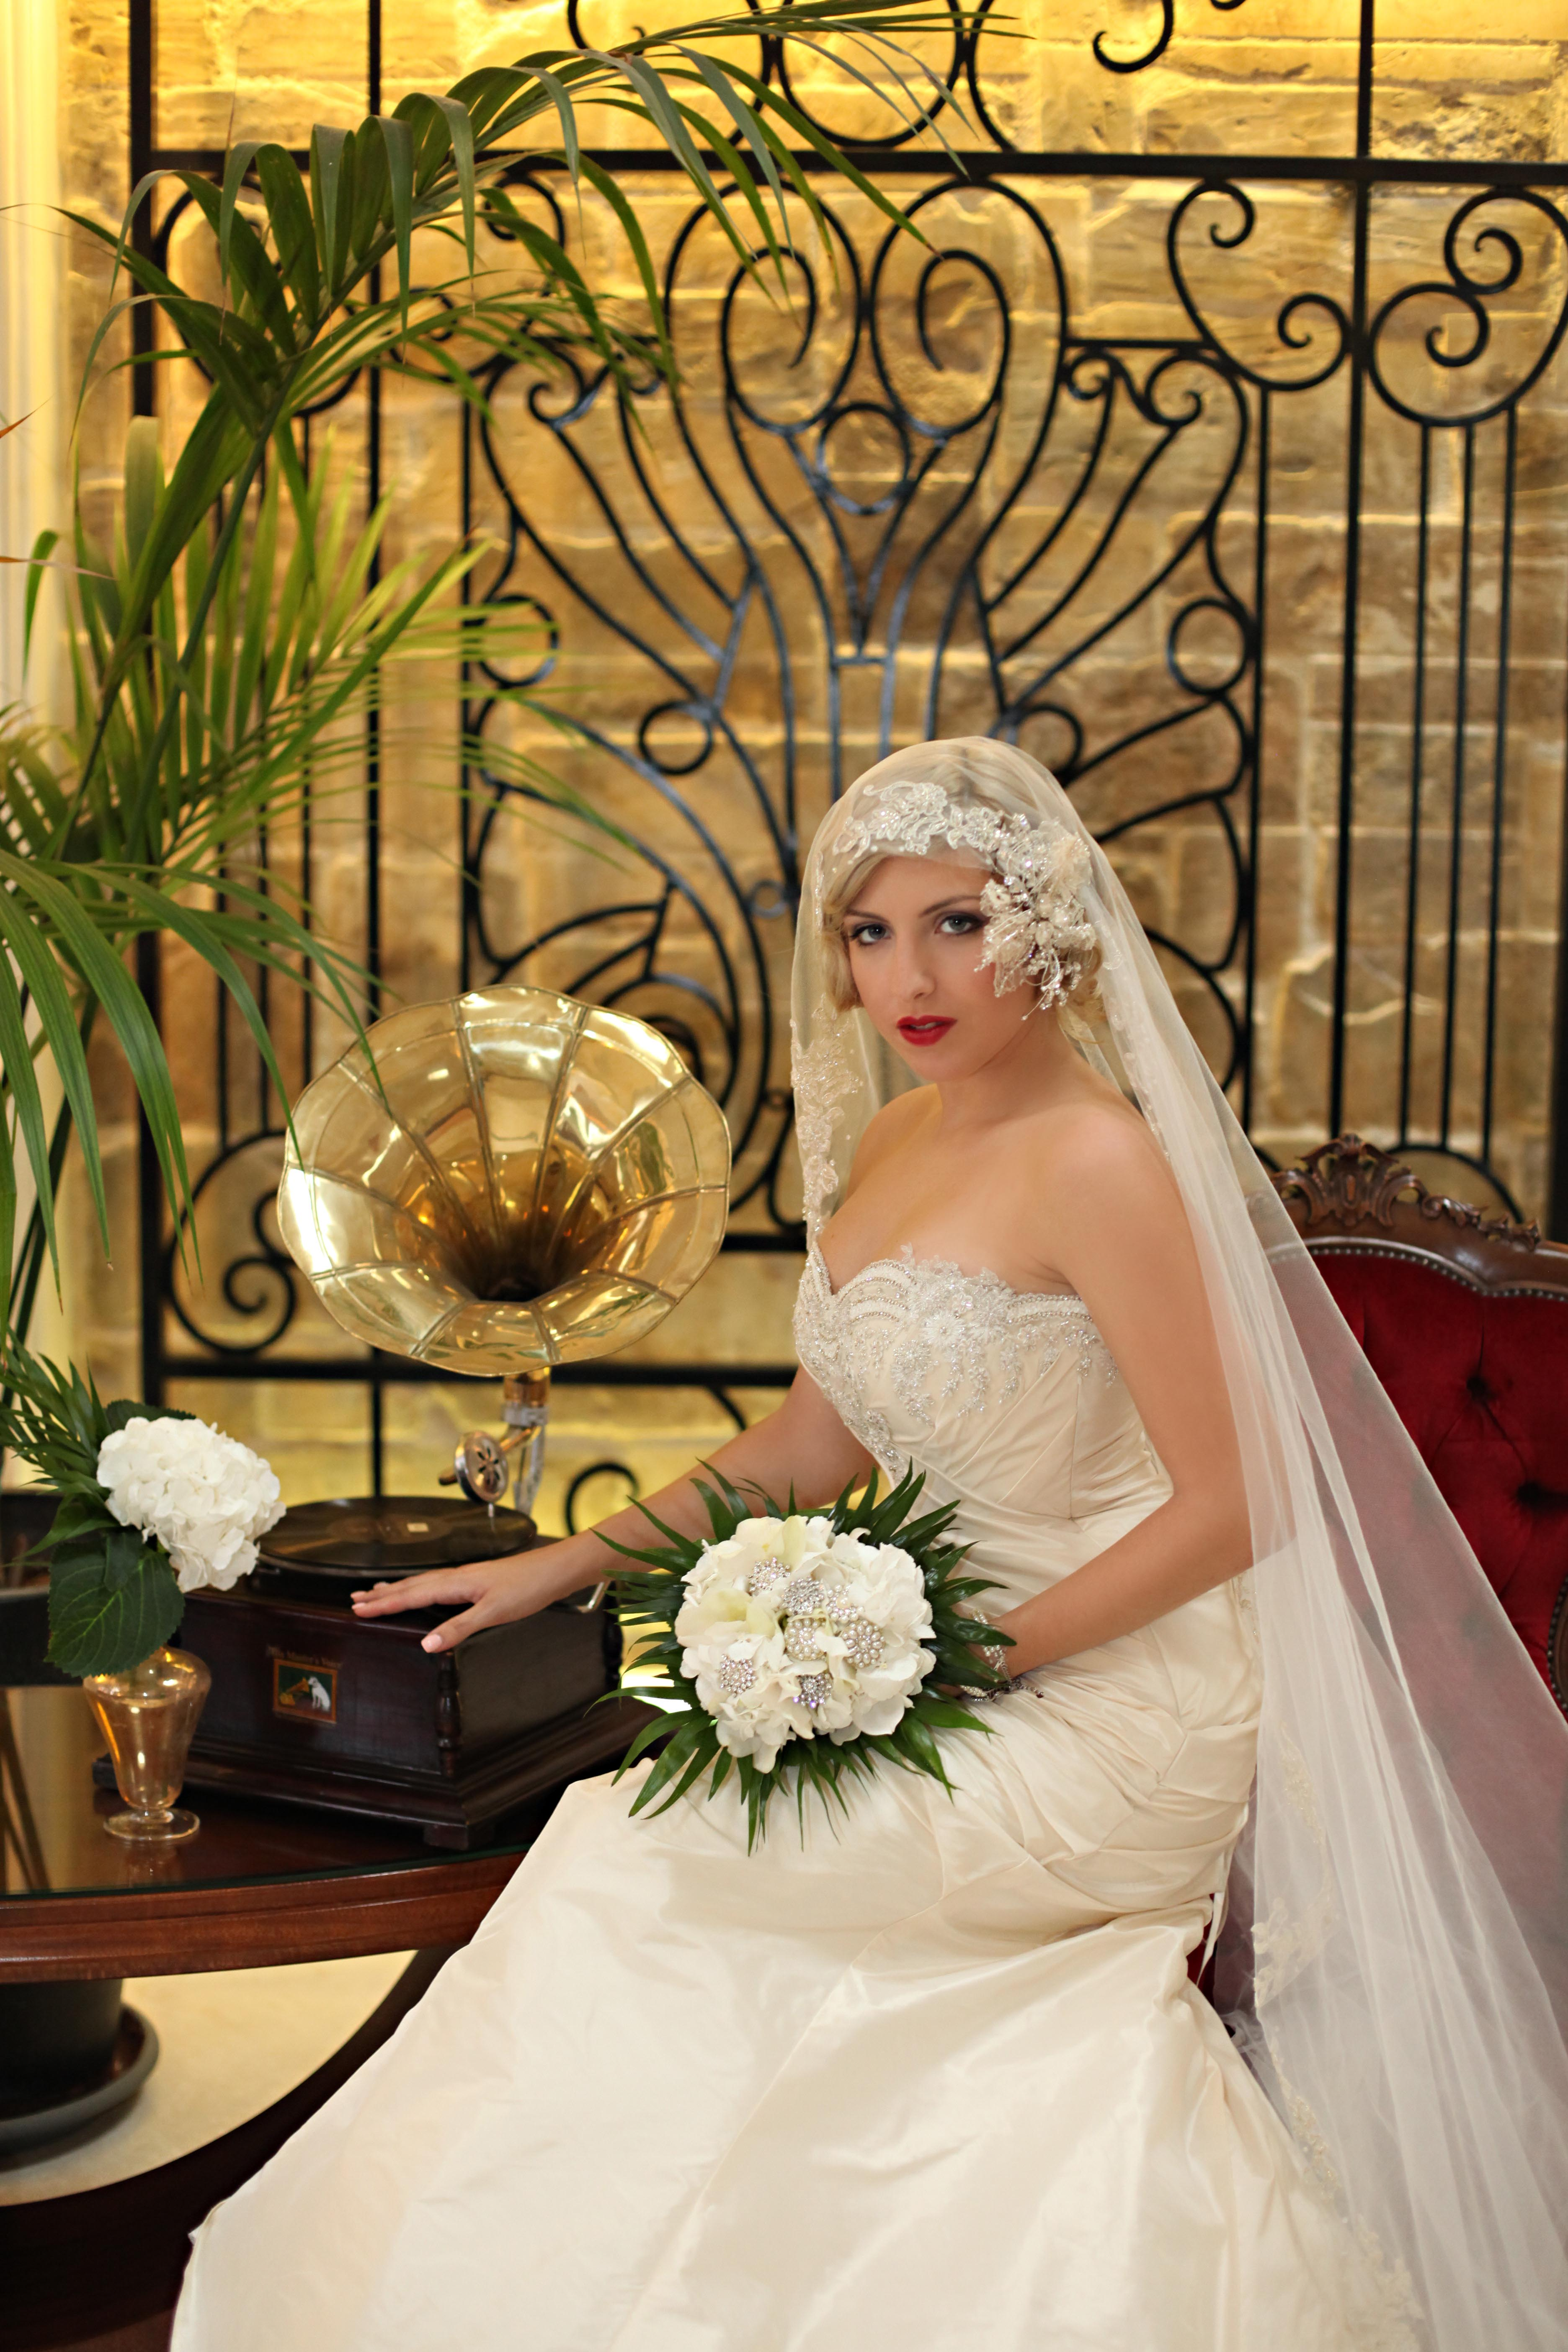 1930s art deco white wedding inspiration shoot